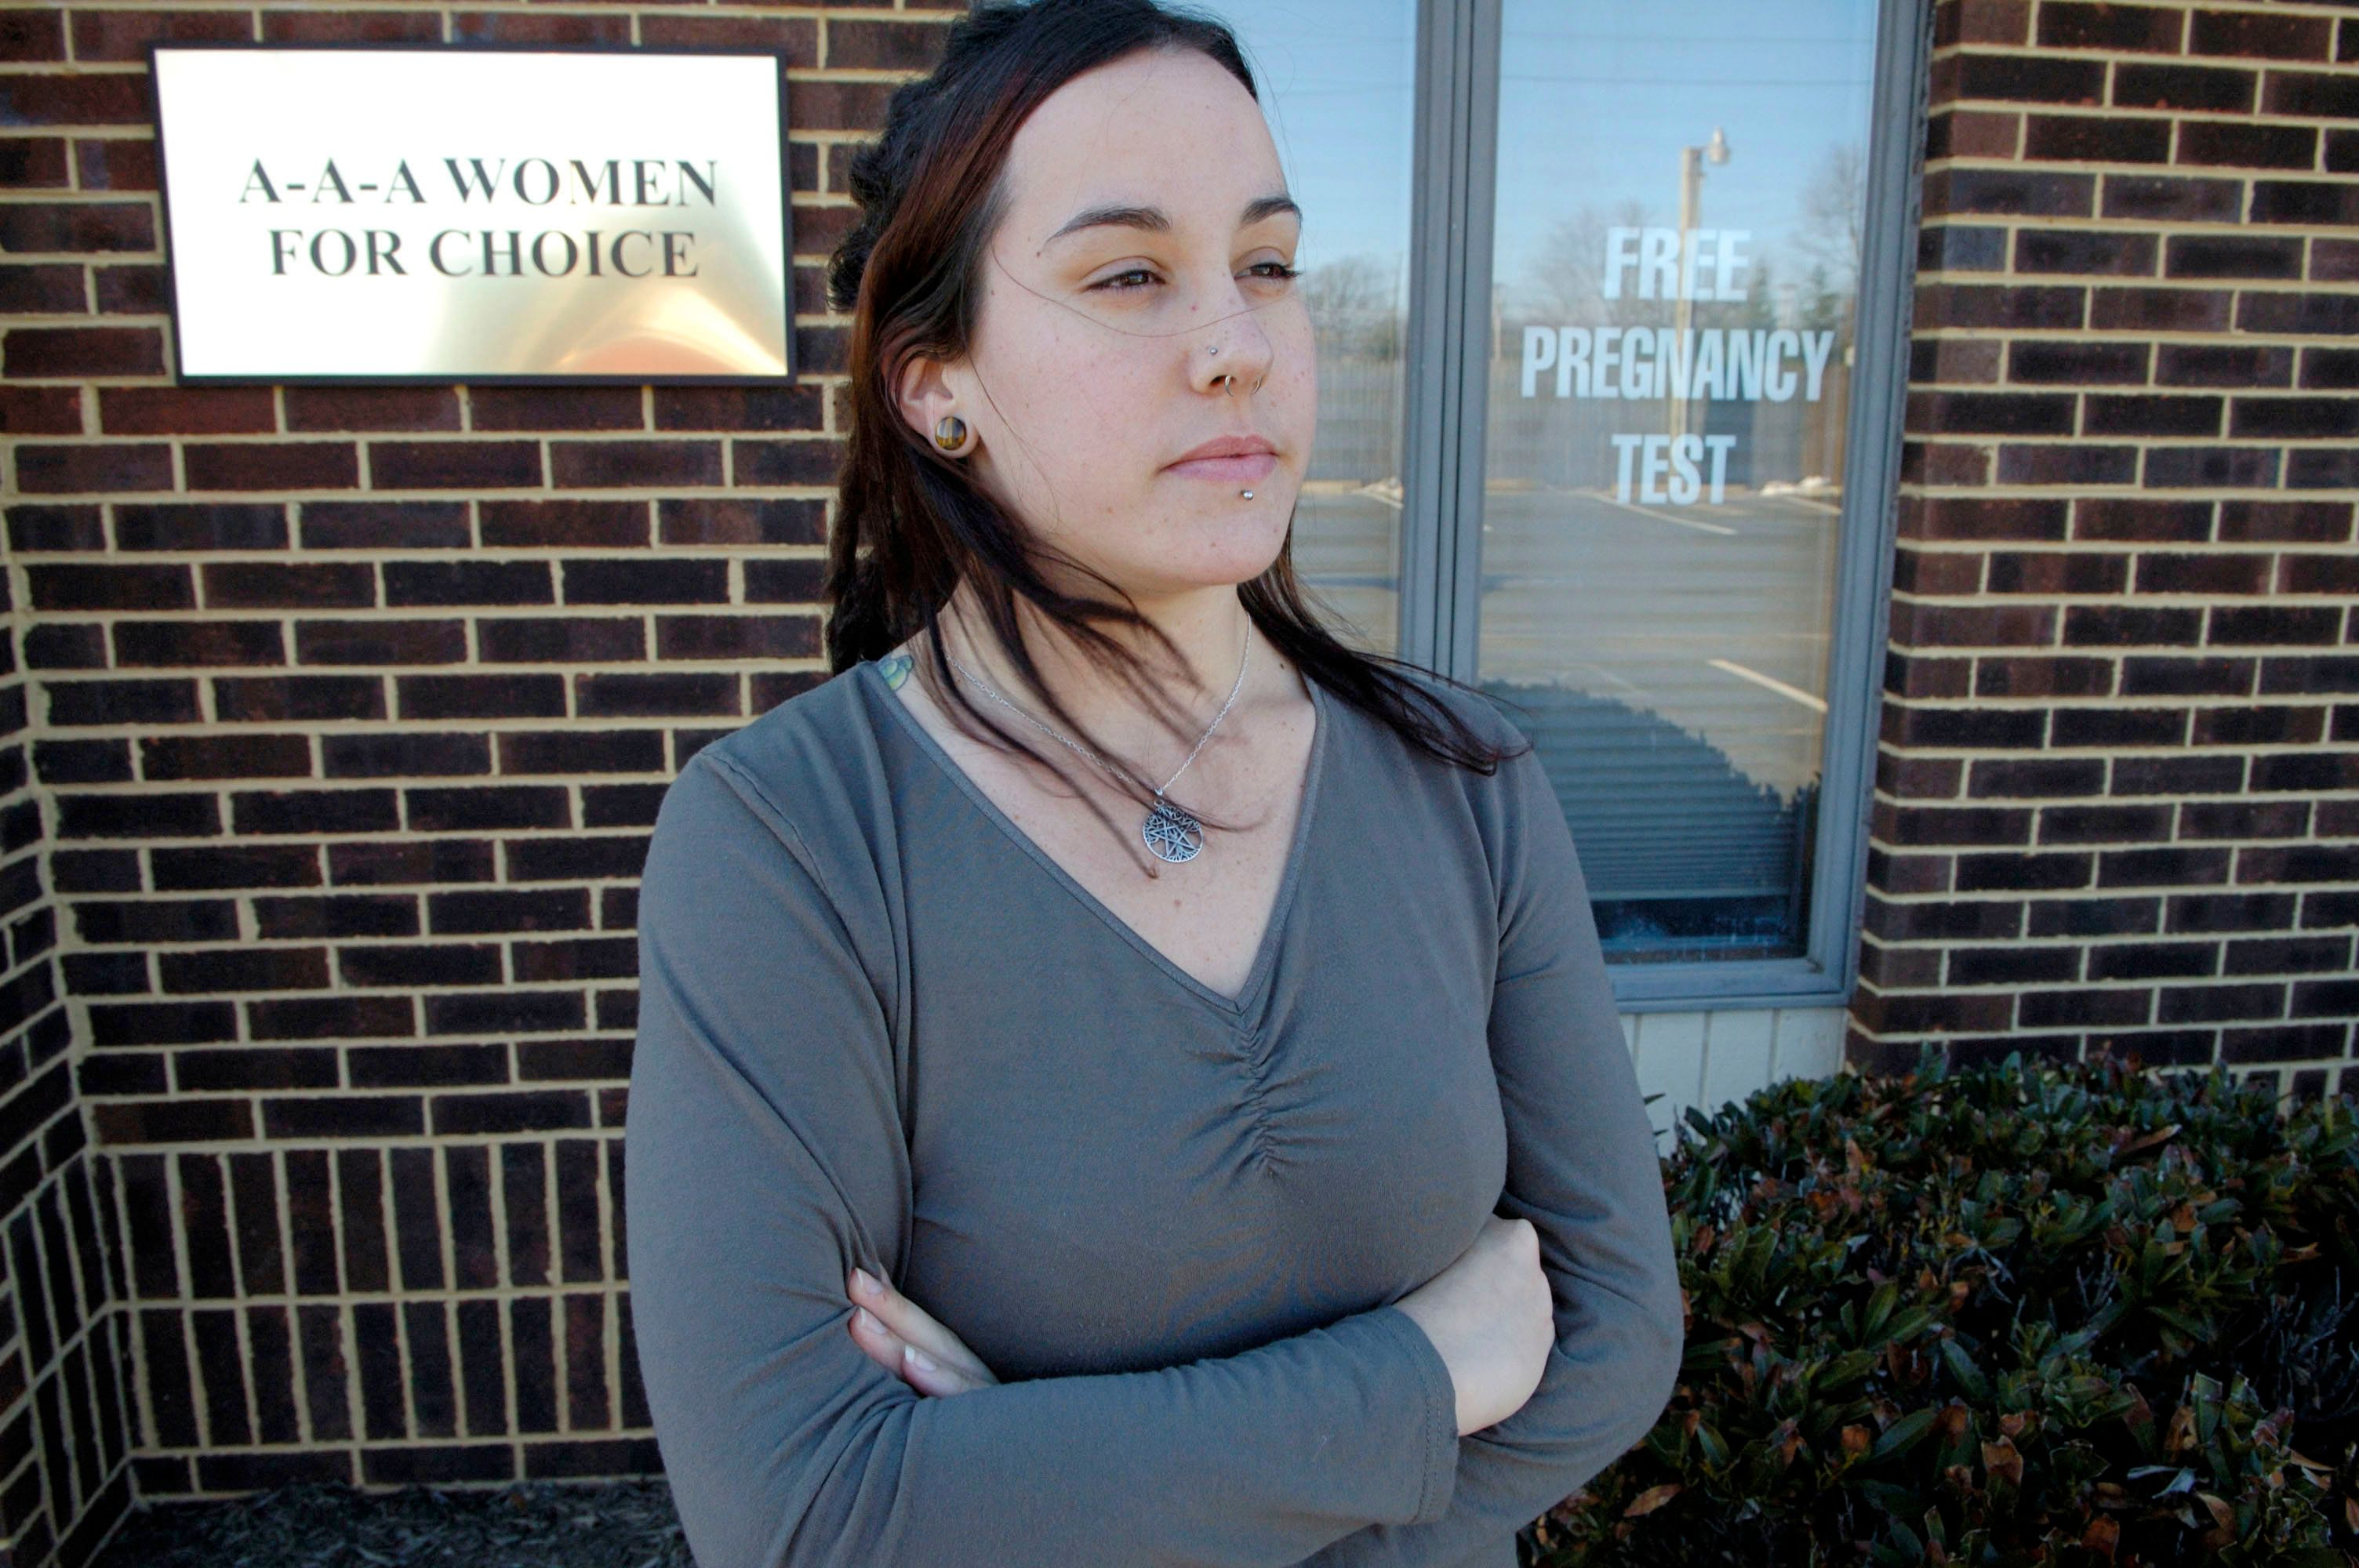 What Are 'Crisis Pregnancy Centers,' And Why Does The Supreme Court Care About Them?